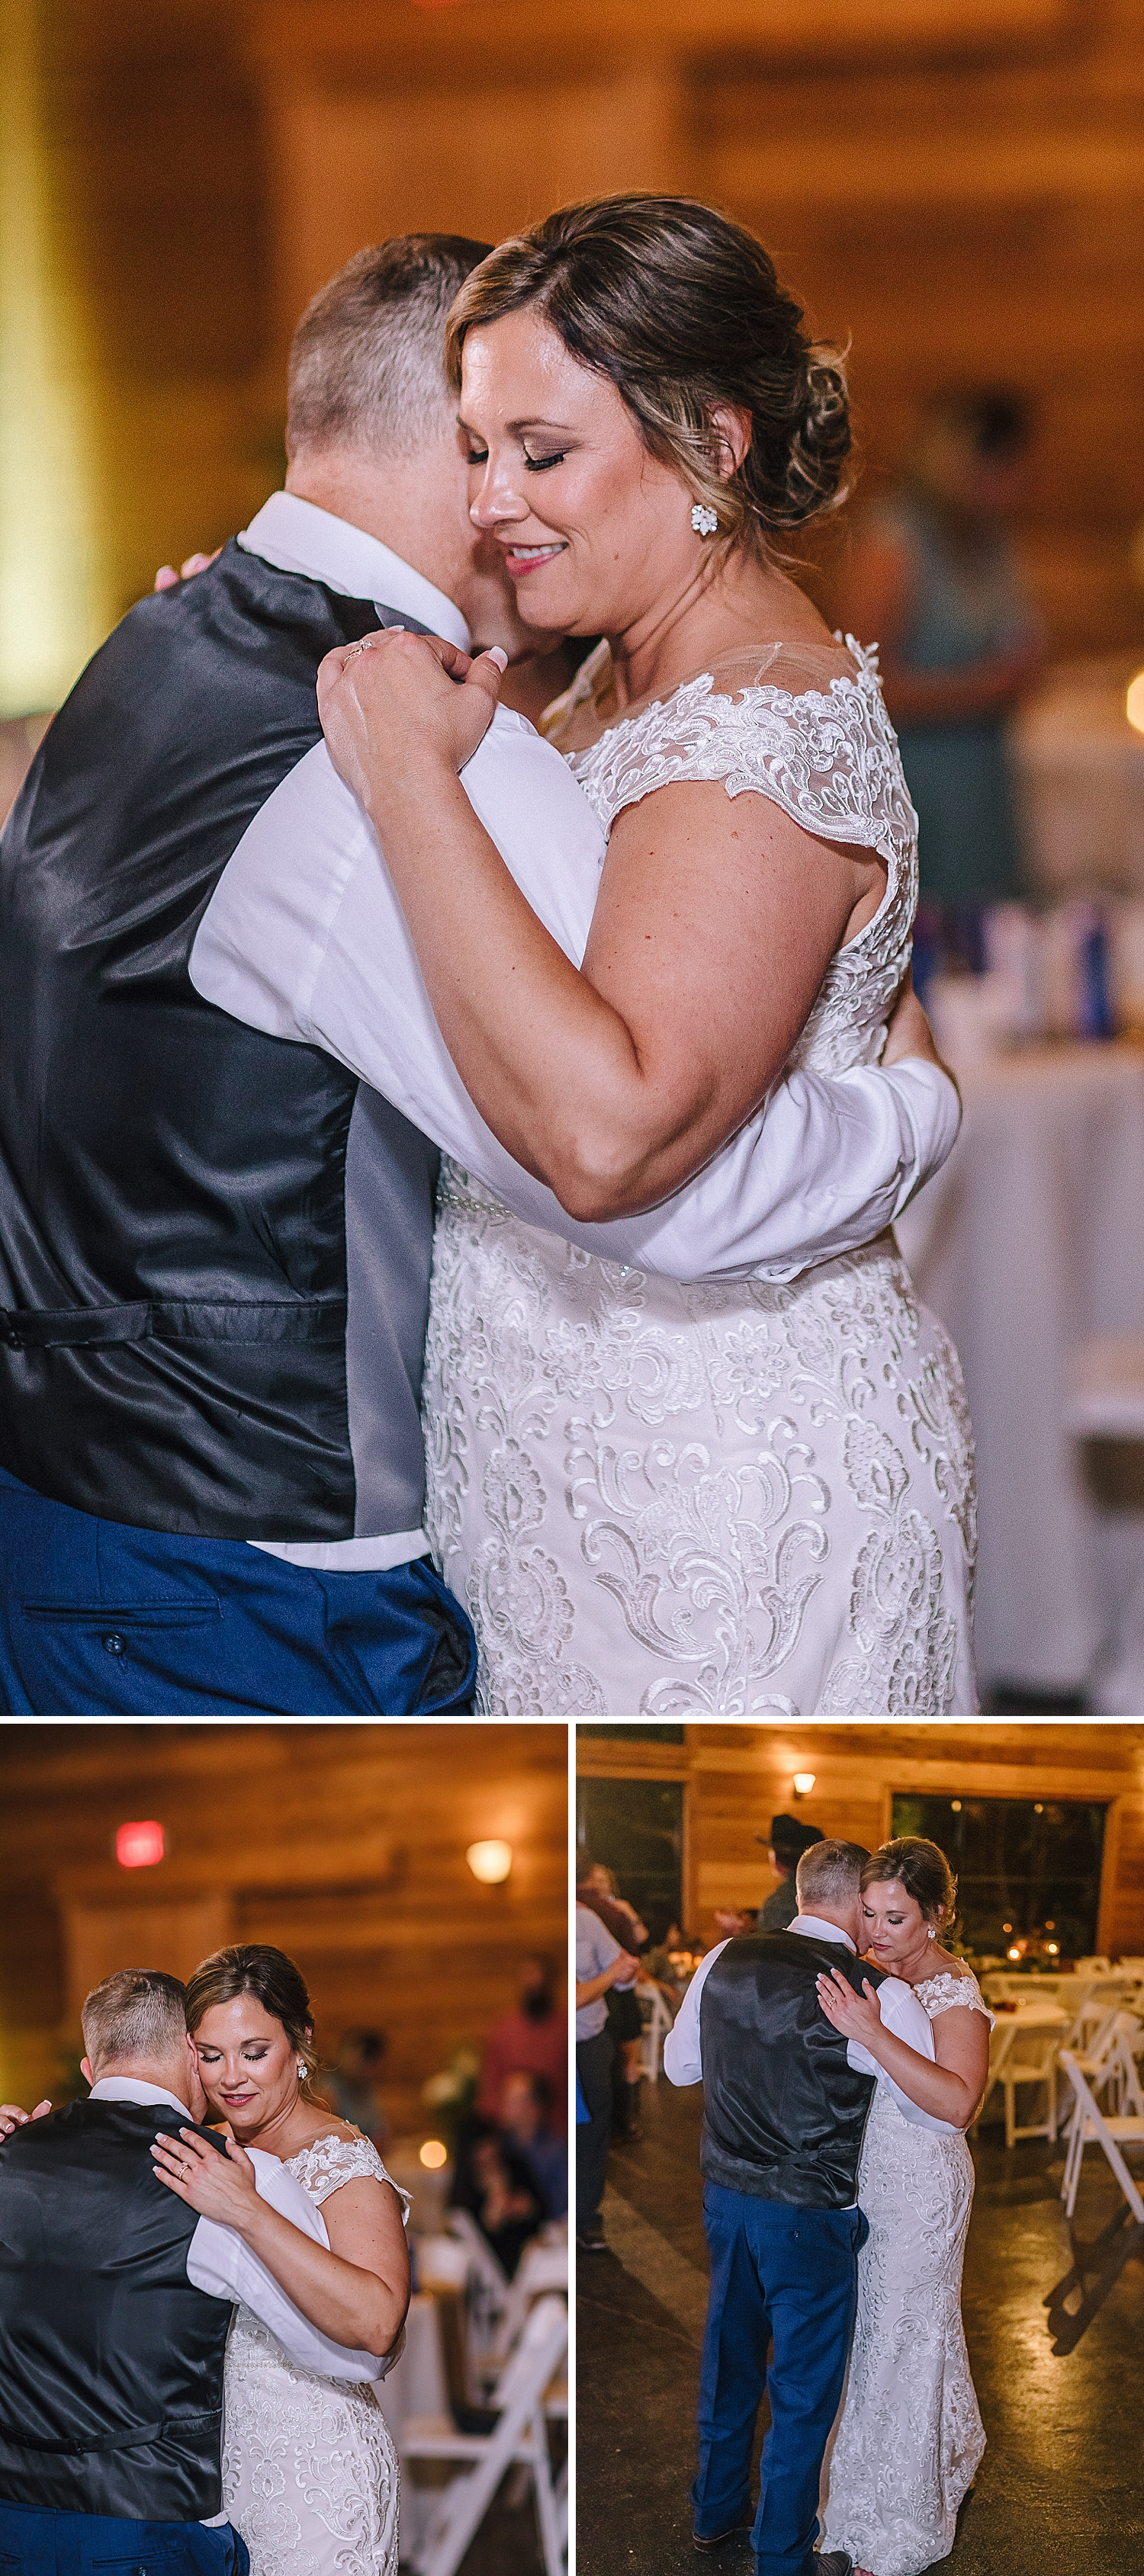 Geronimo-Oaks-Wedding-Venue-Seguin-Texas-Elegant-Navy-Burgundy-Wedding-Carly-Barton-Photography_0086.jpg